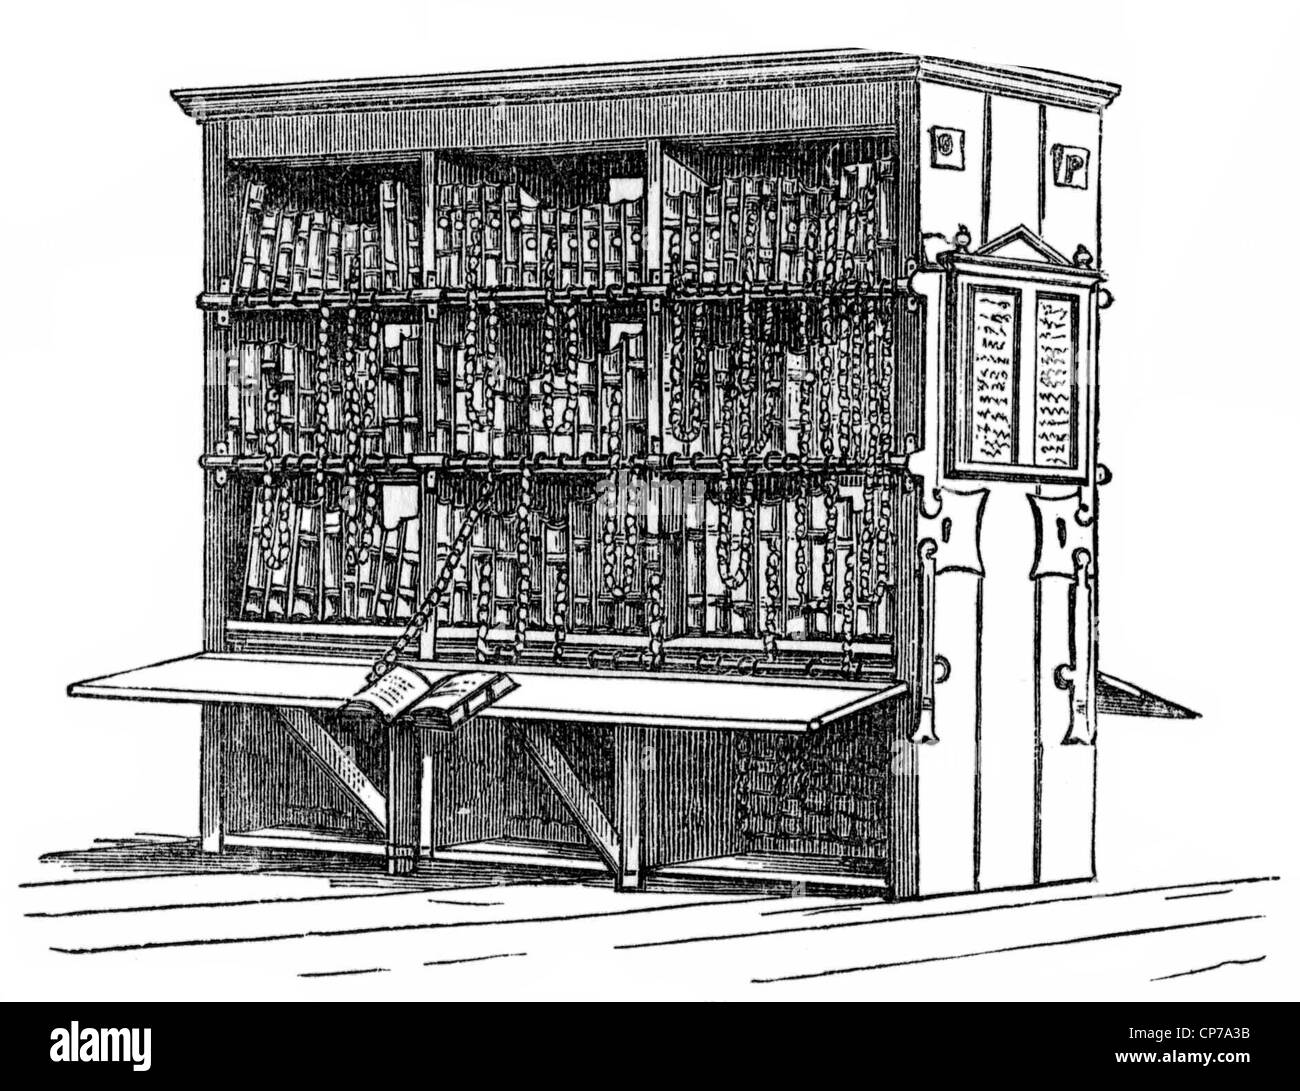 Engraving of antique bookcase on white background. - Stock Image